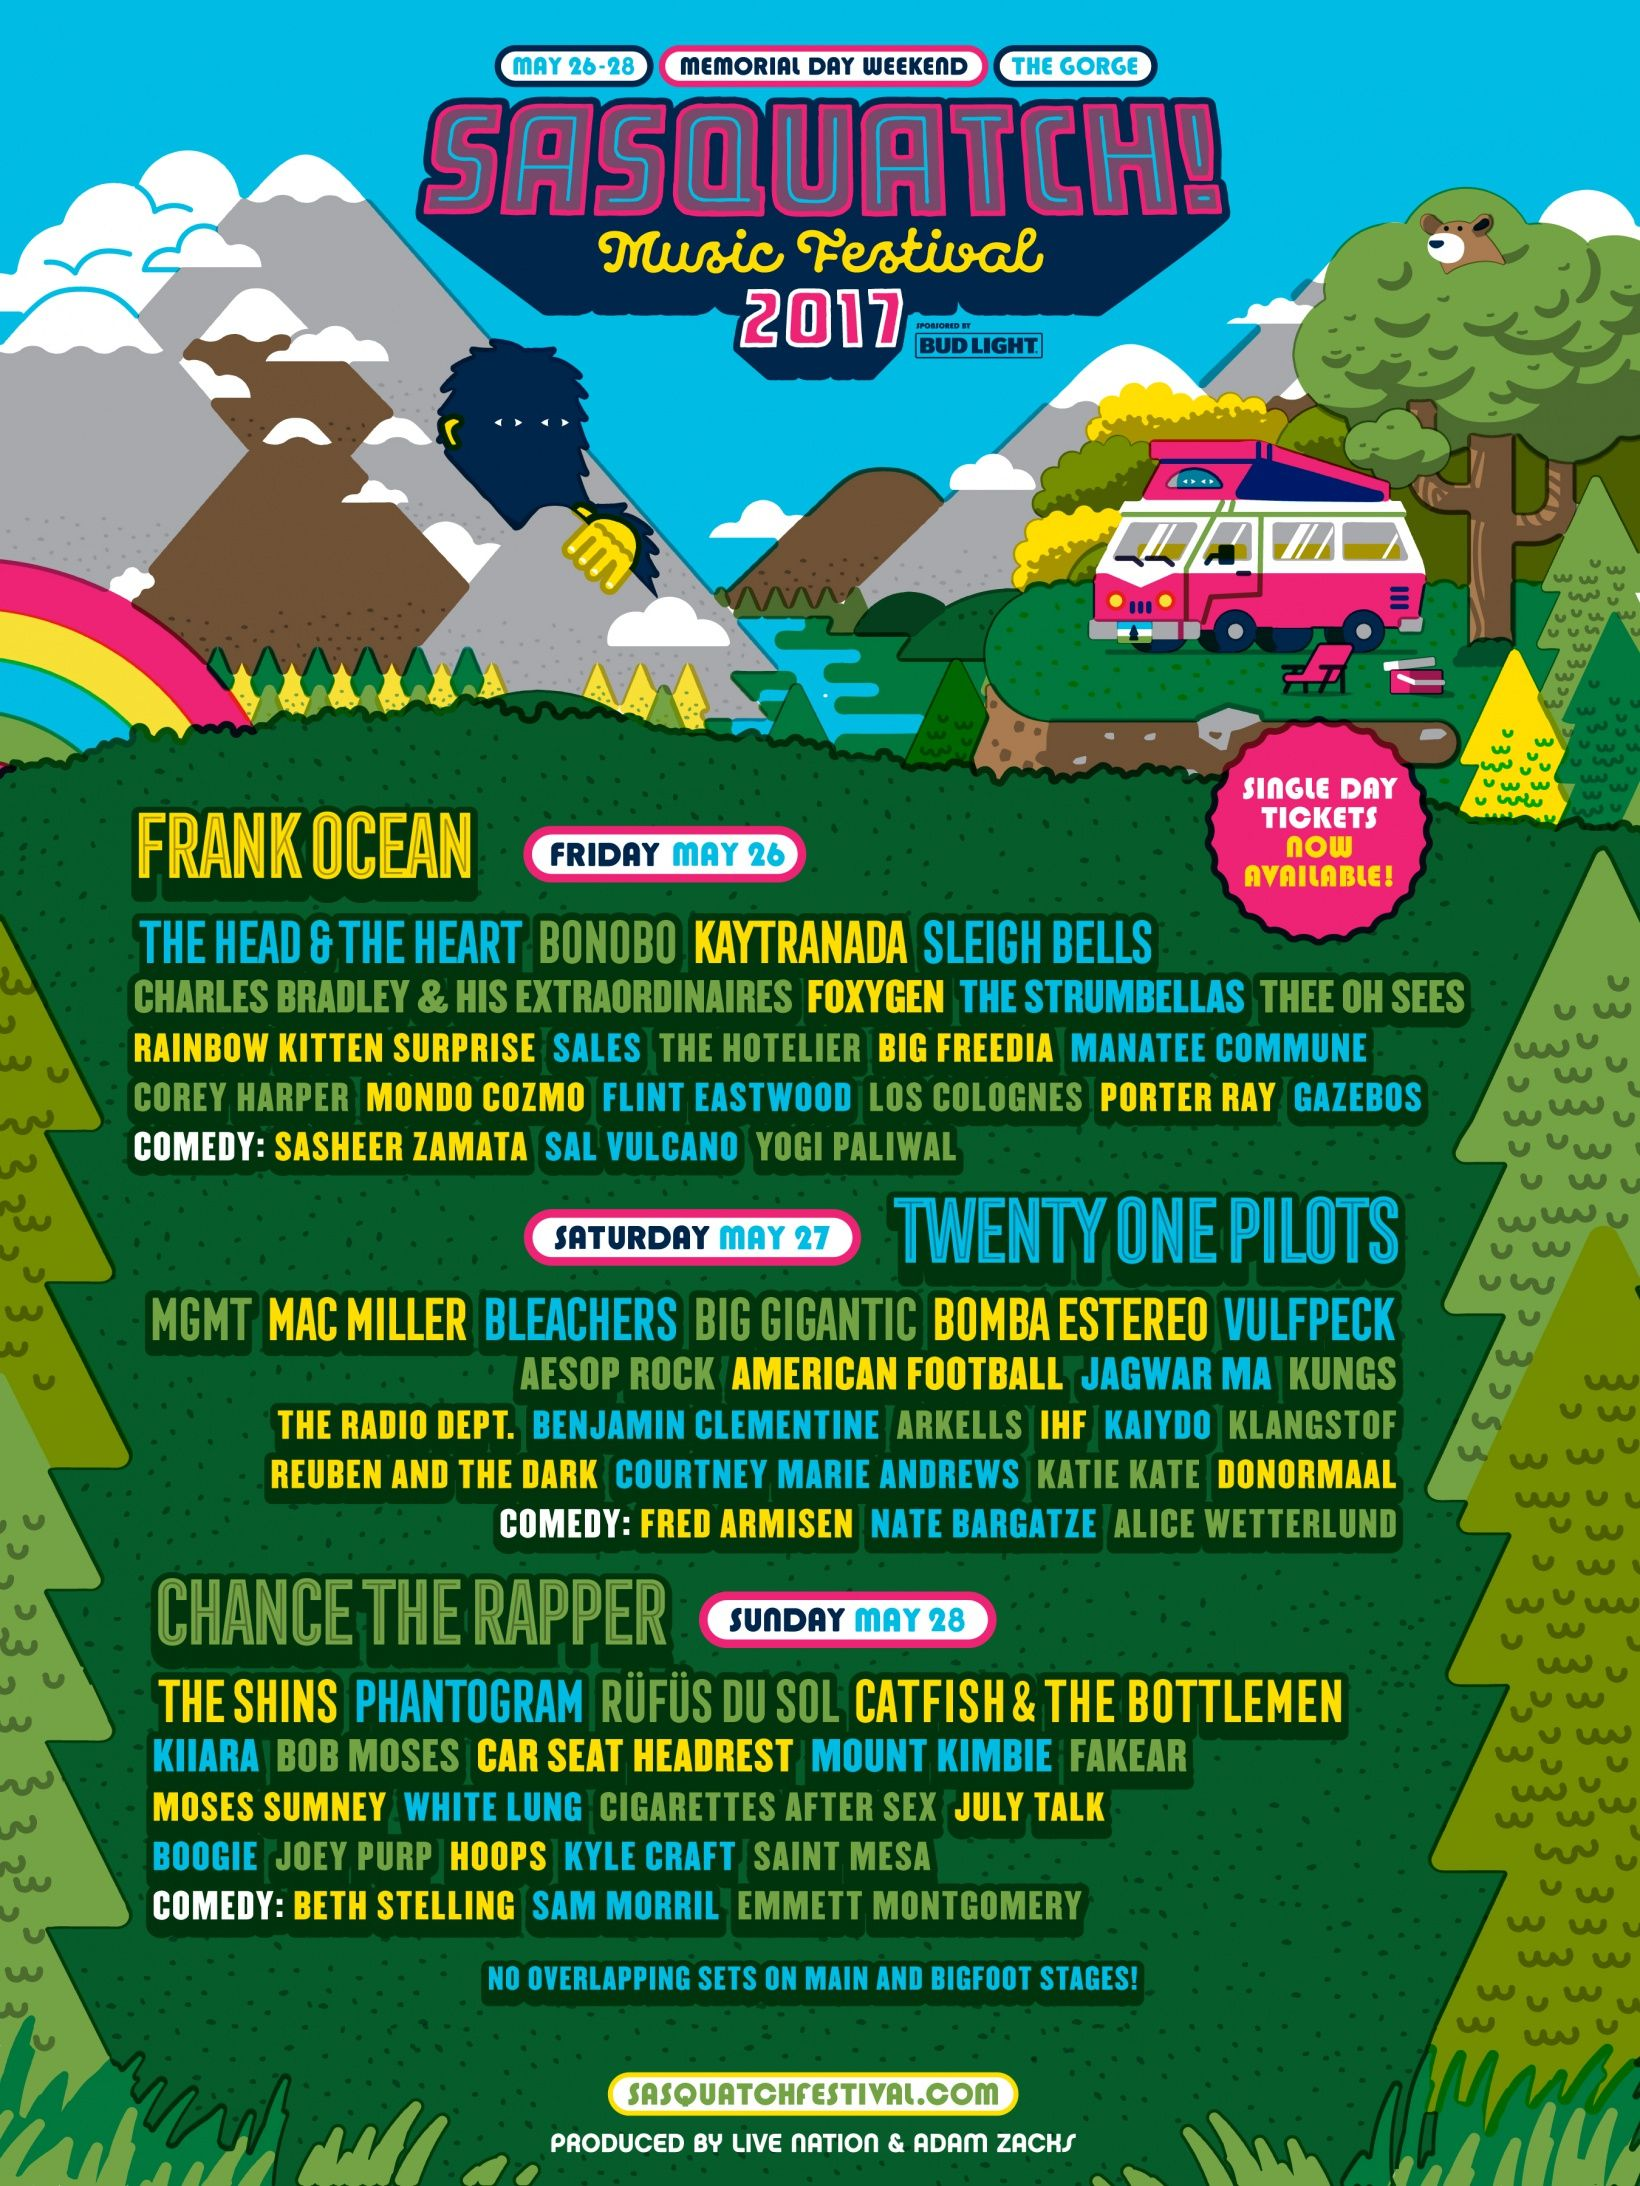 A 4 Day Music Festival On Memorial Day Weekend At The Scenic Gorge In Central Washington State Sasquatch Music Festival Music Festival Rainbow Kitten Surprise